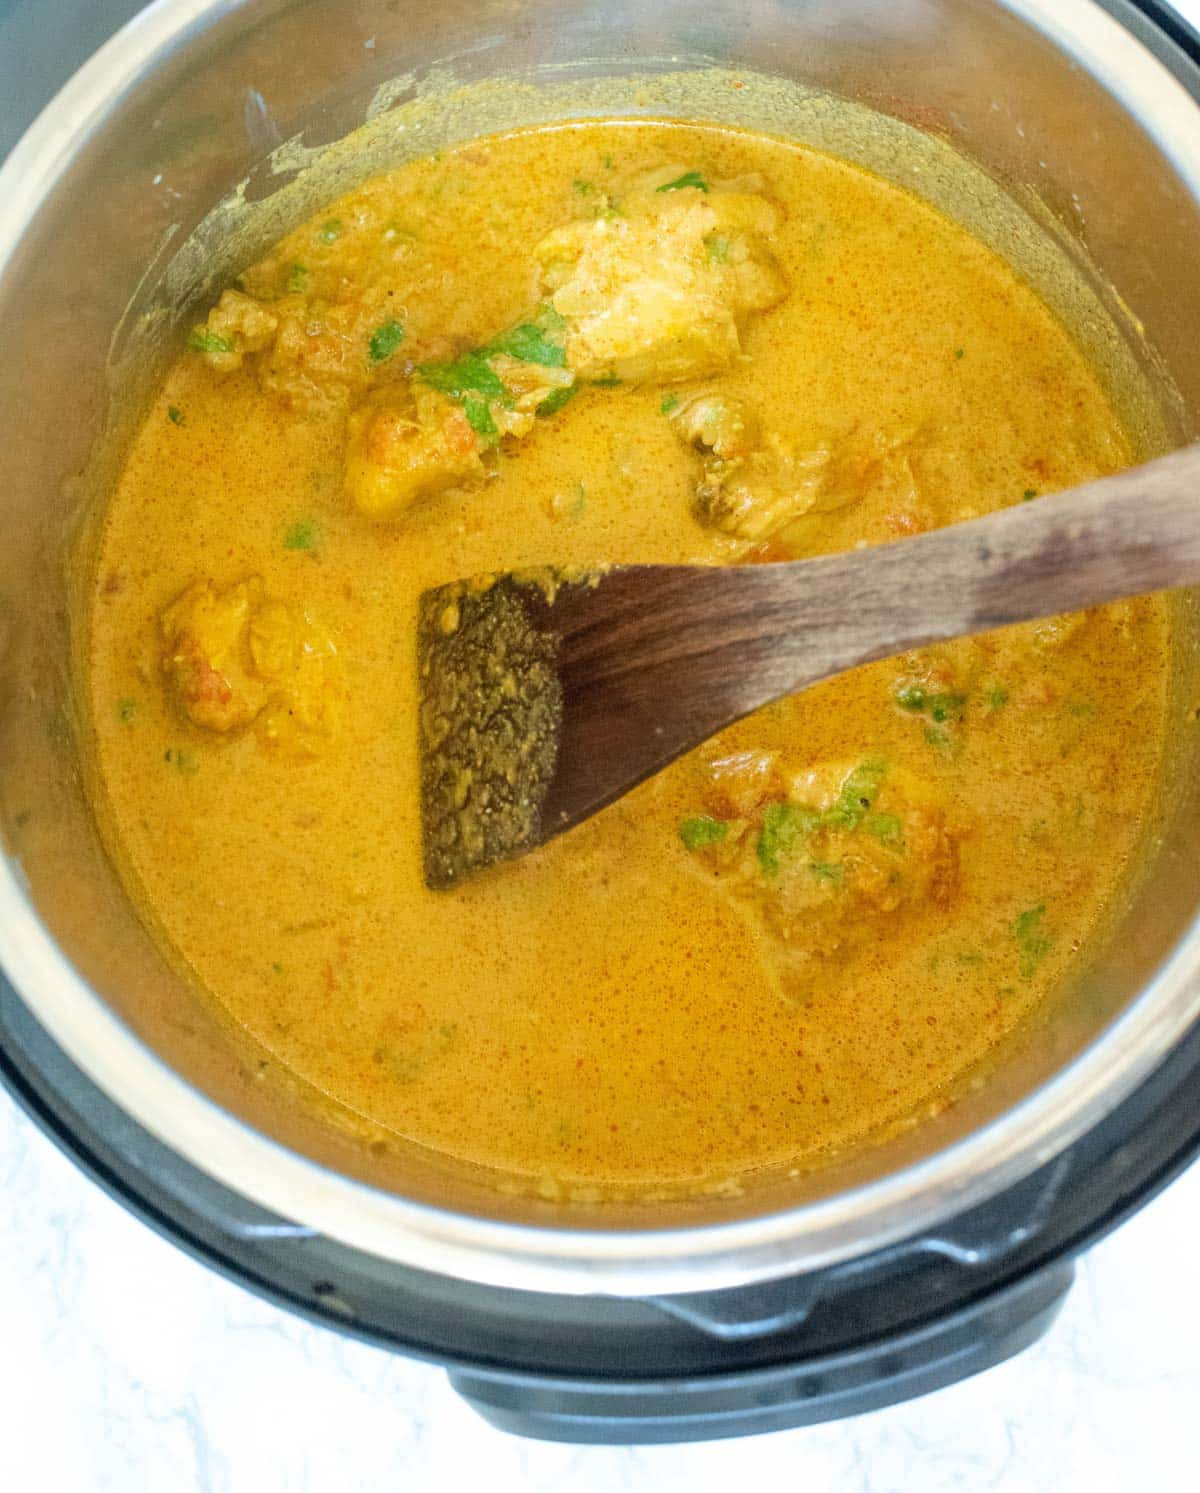 Chicken curry inside the Instant Pot, with a wooden ladle in it